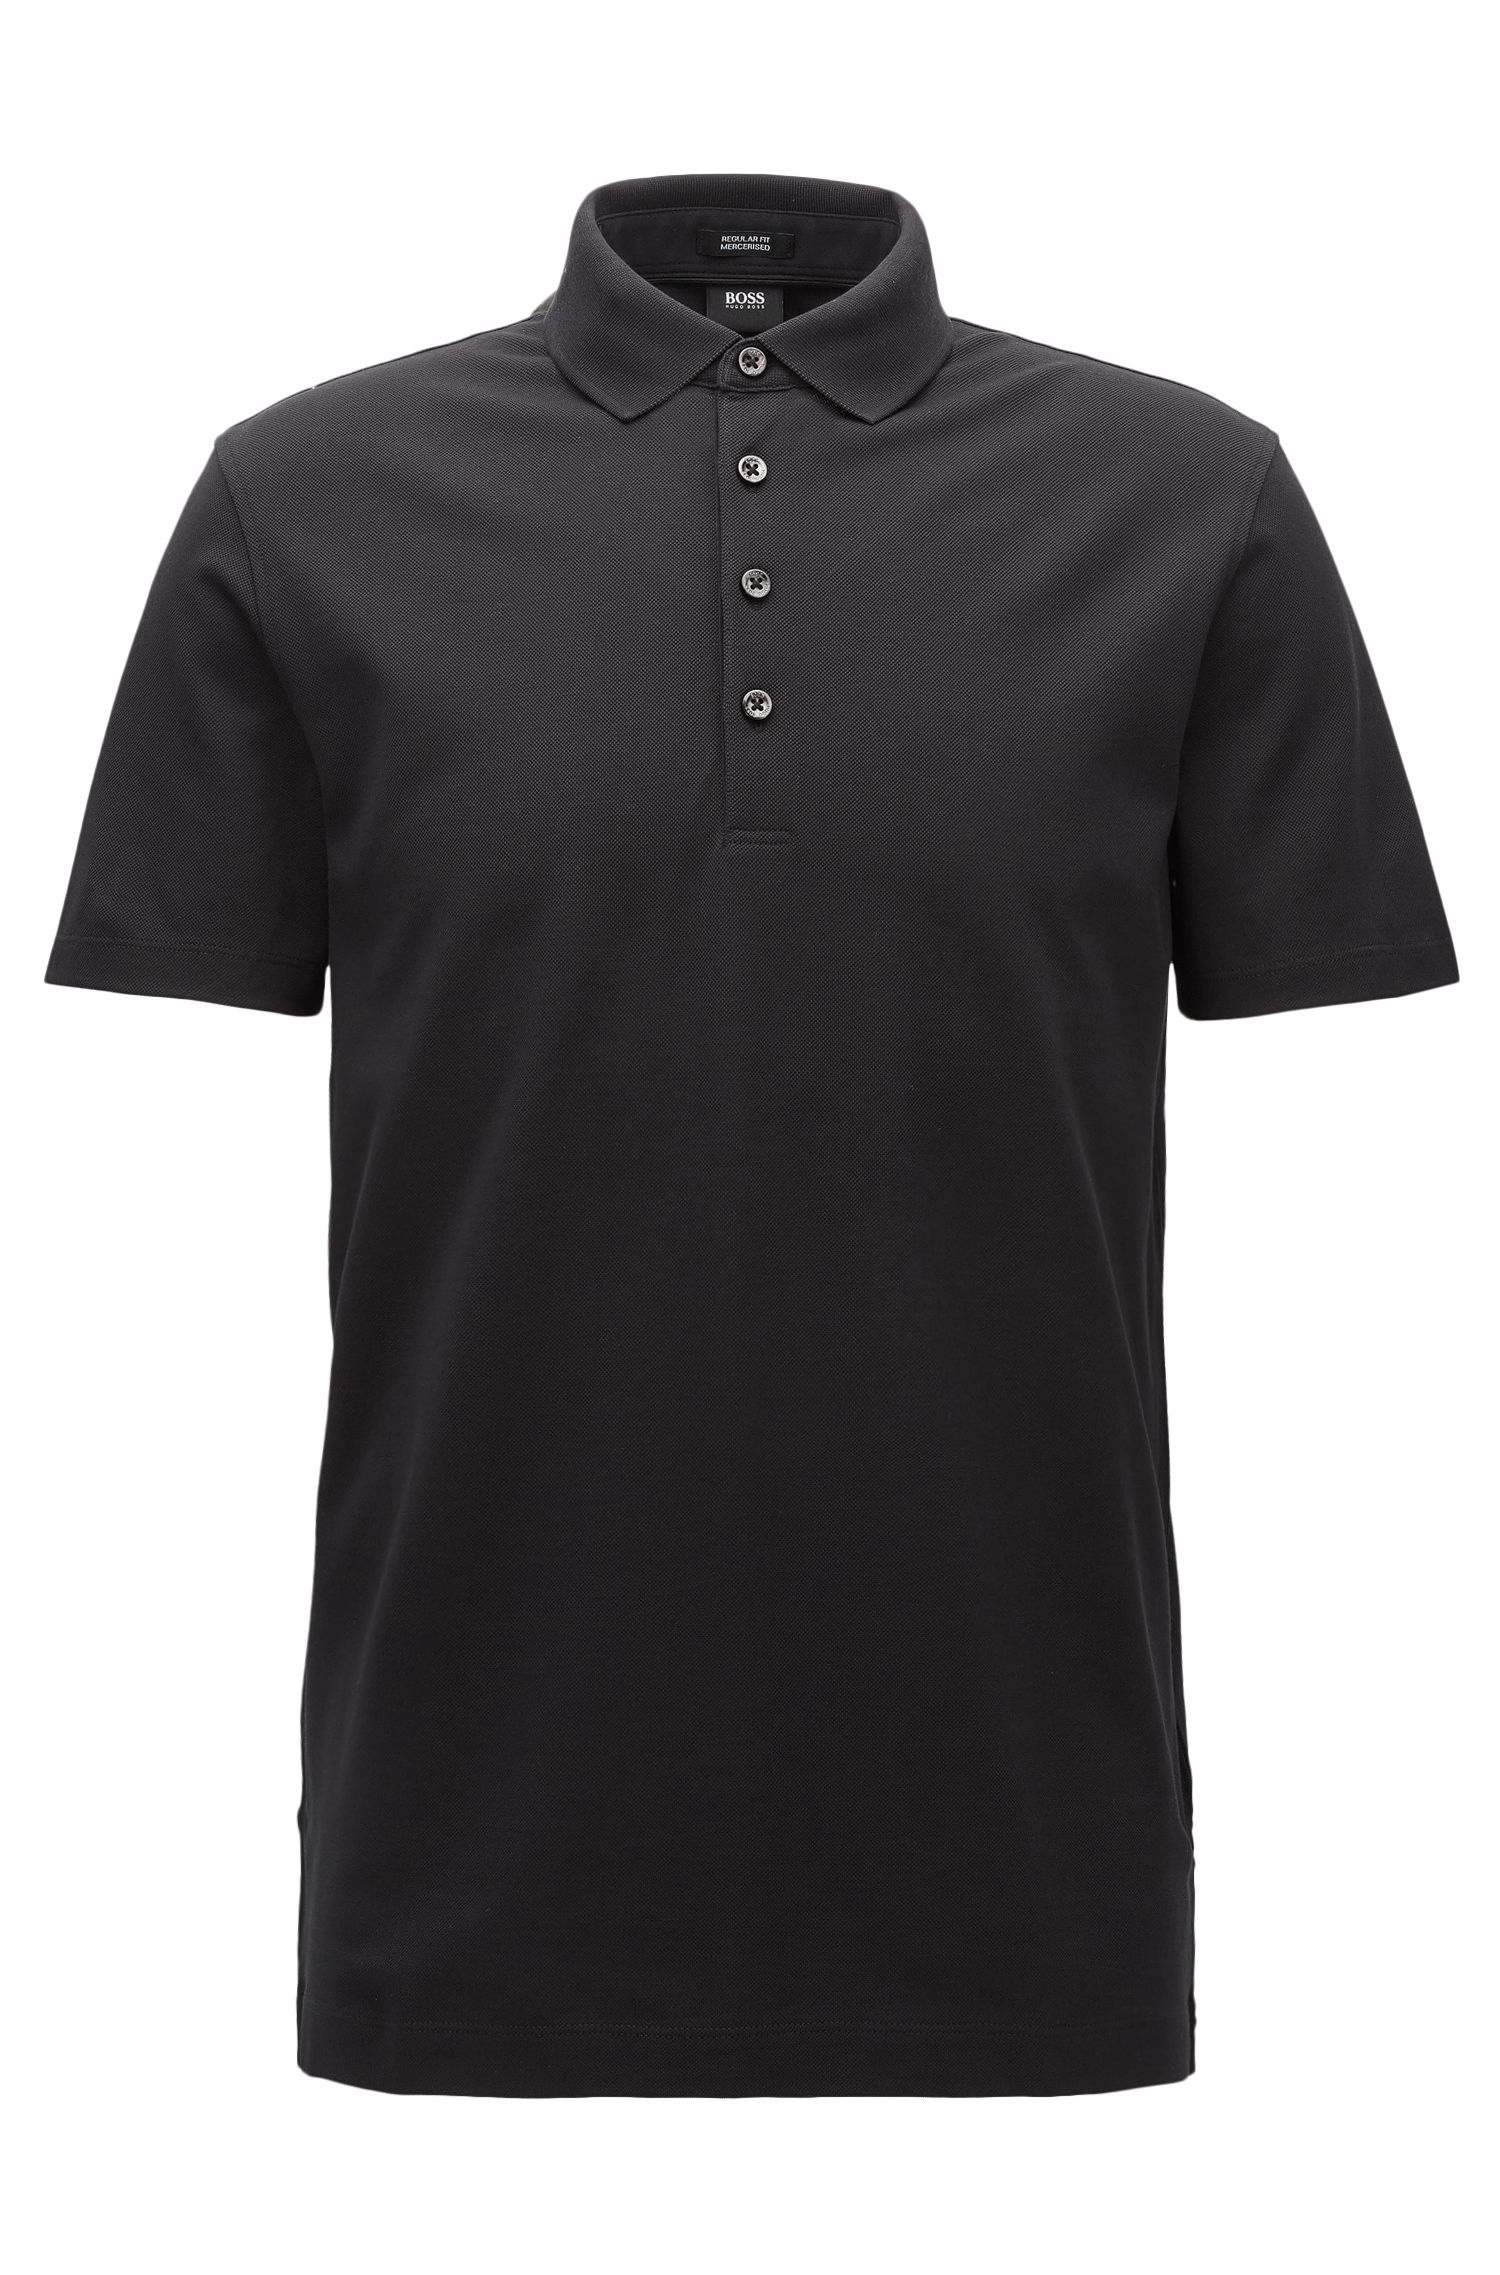 Polo regular fit en algodón de piqué mercerizado